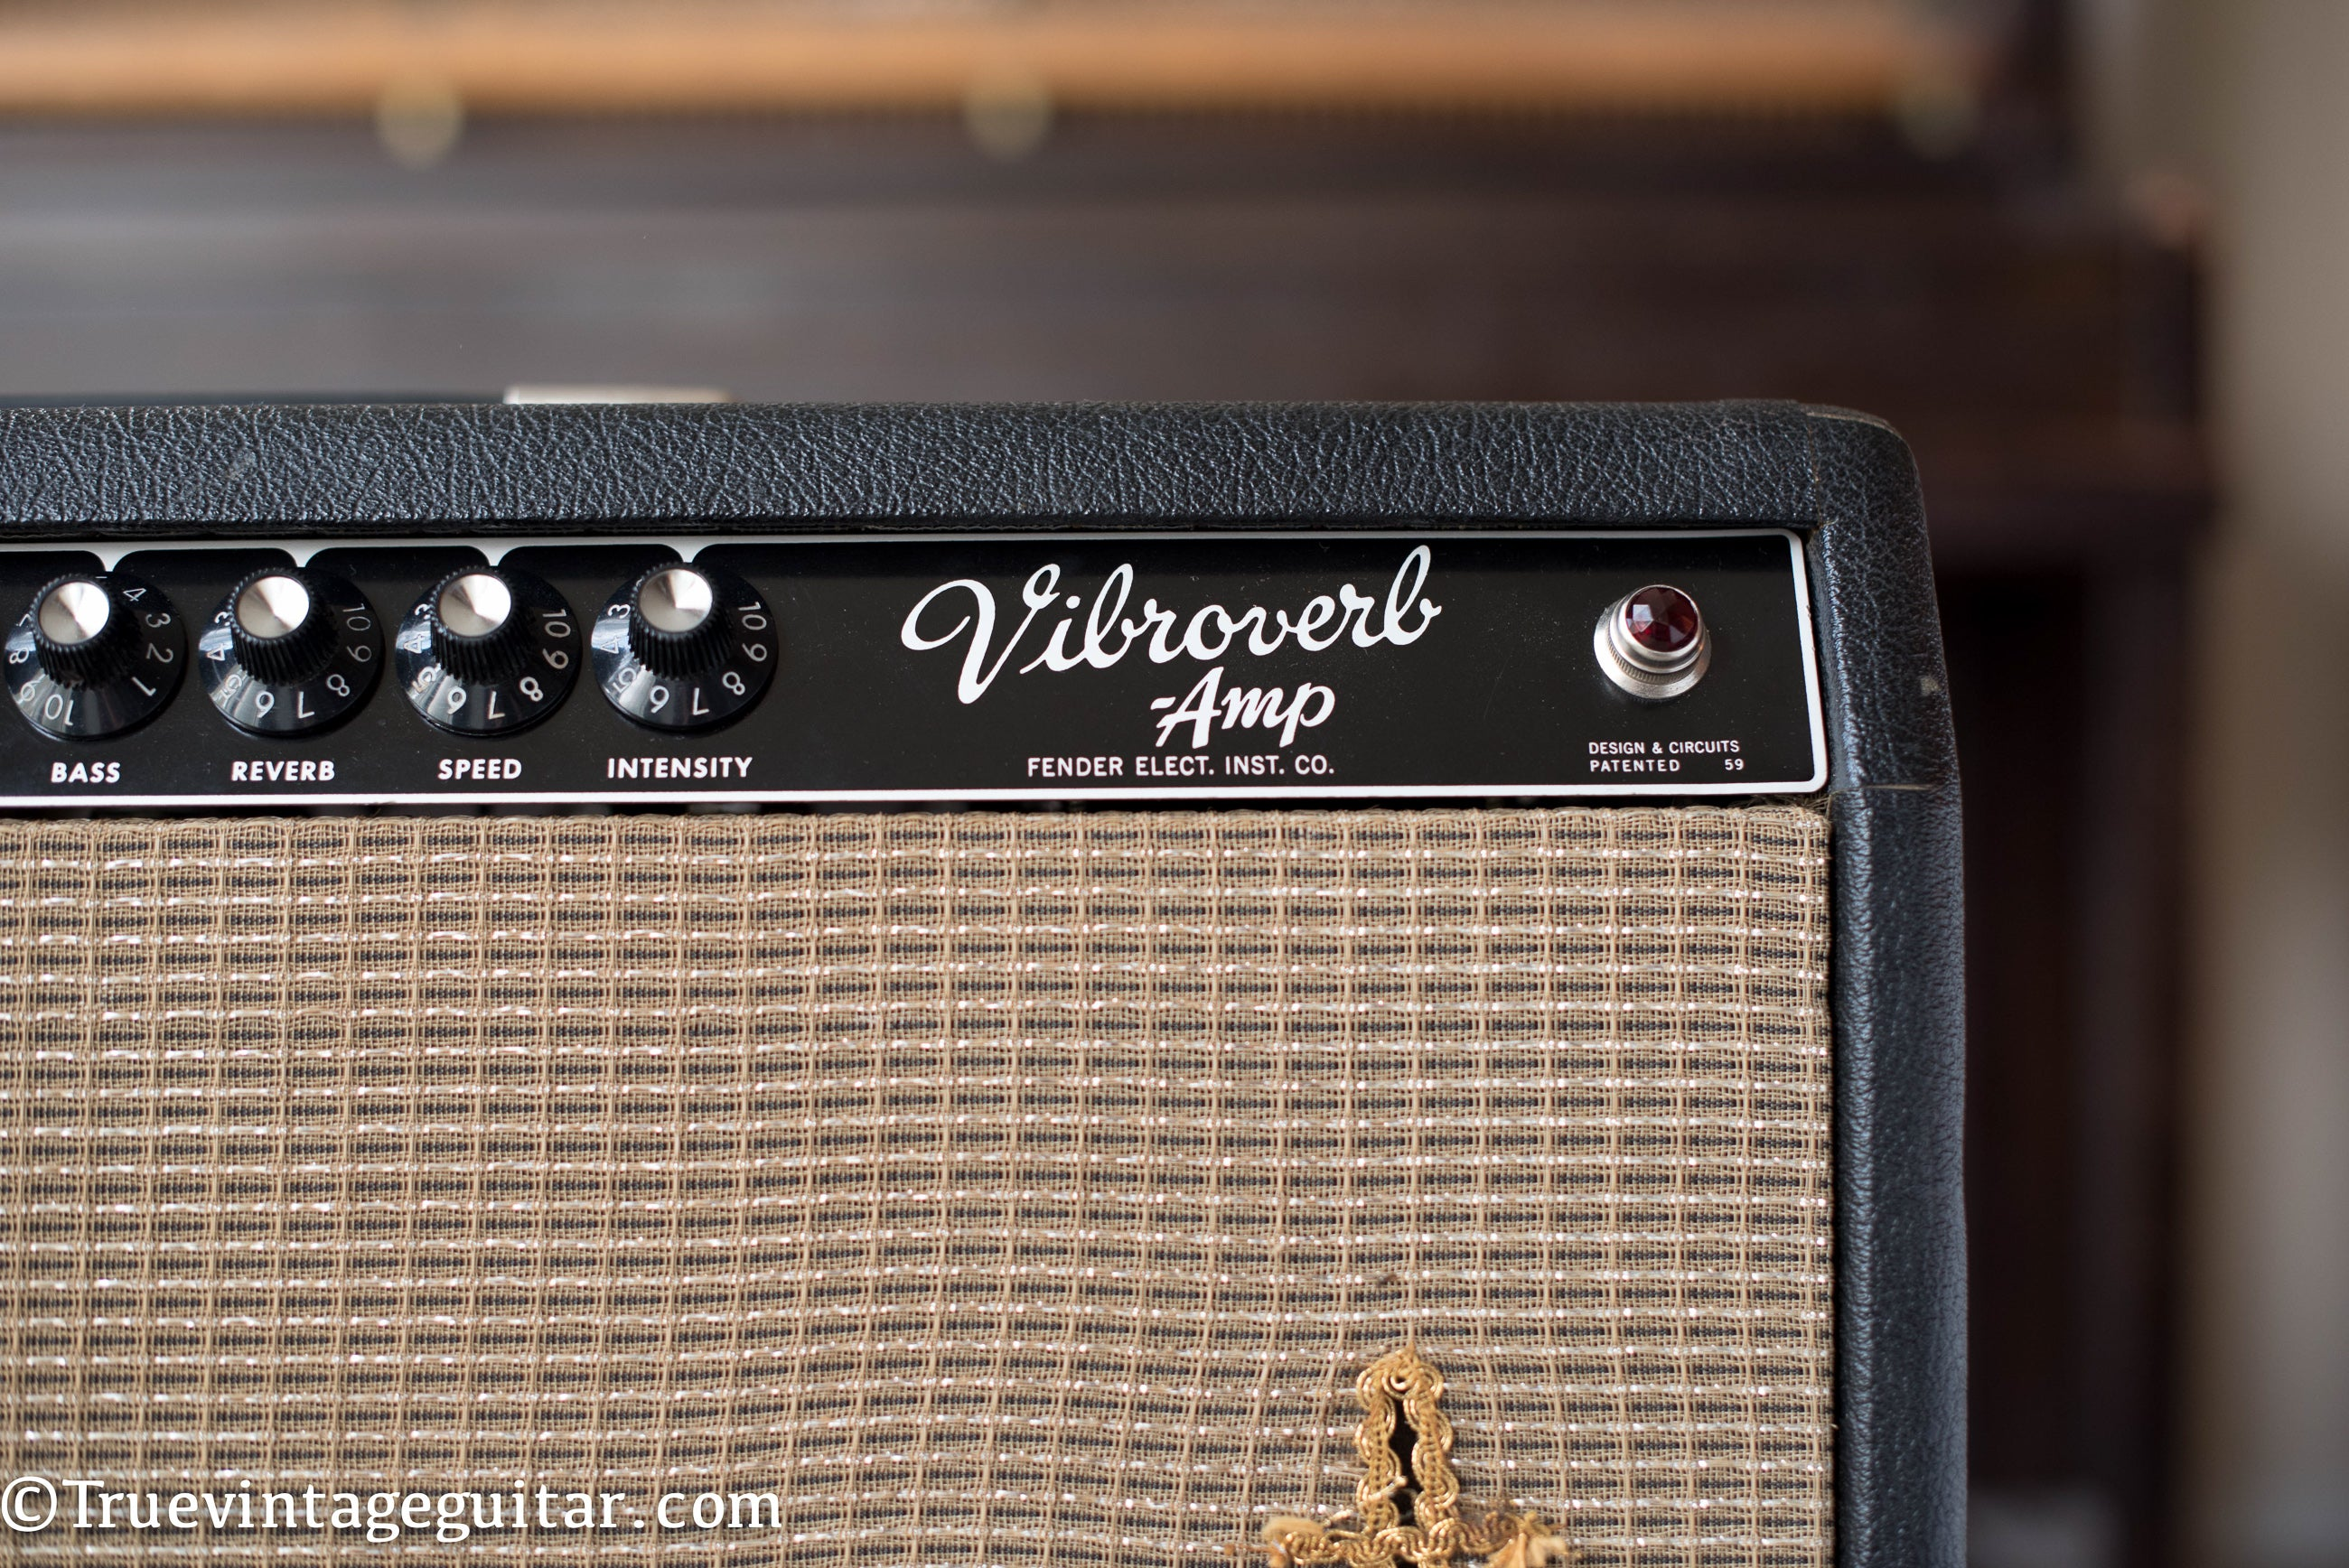 Vibroverb, 1964 Fender guitar amplifier